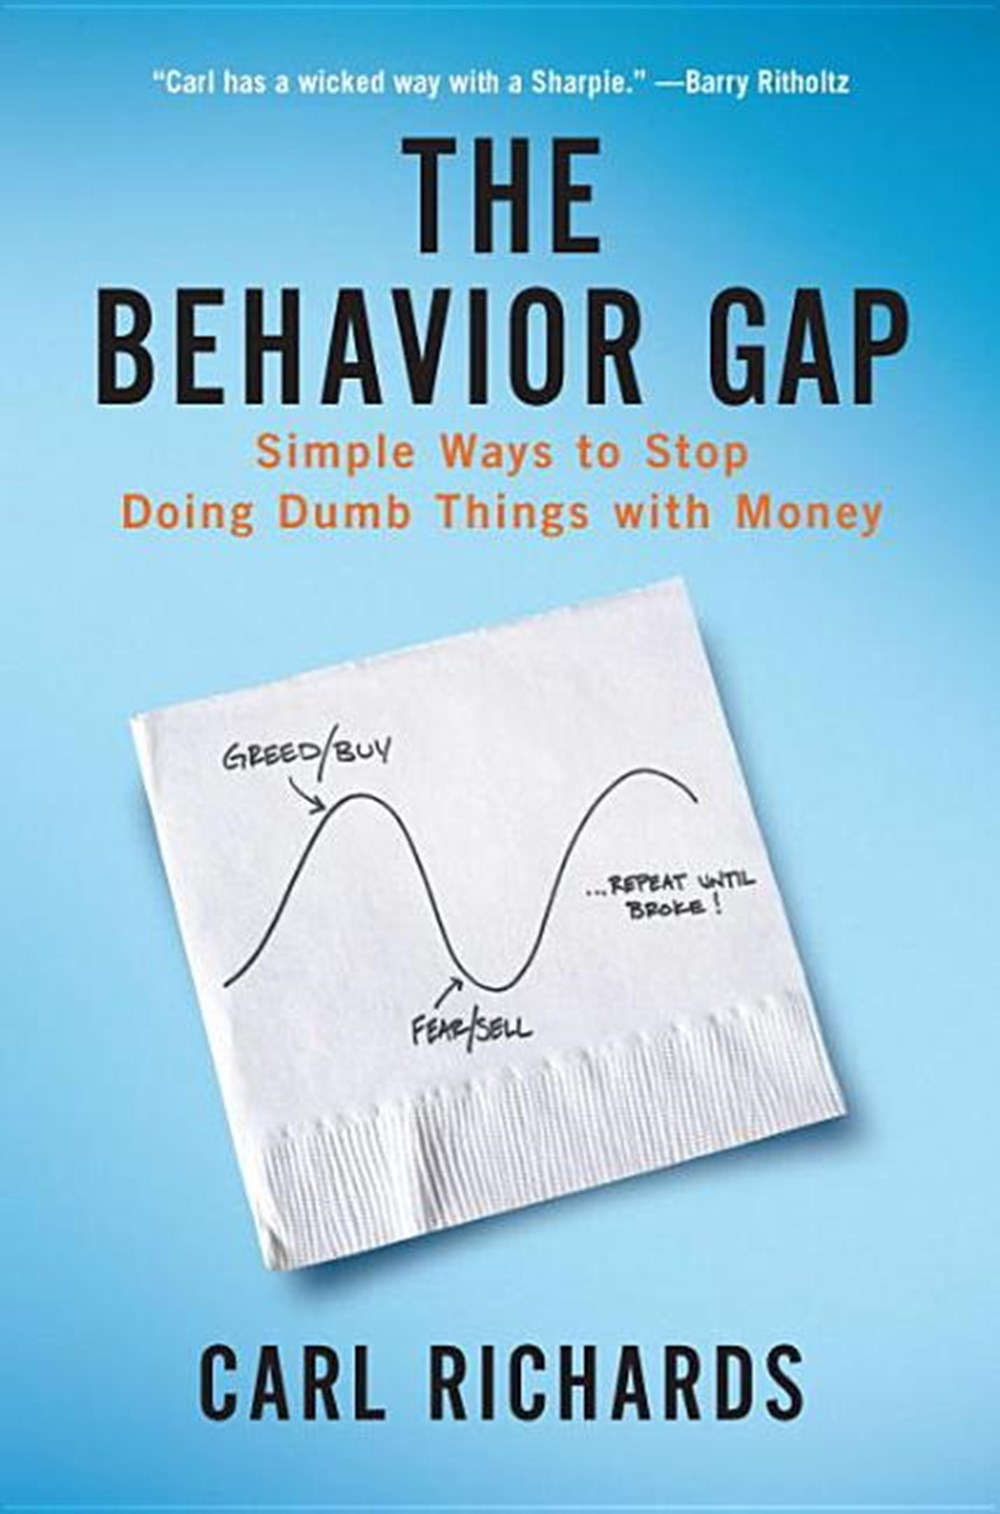 Behavior Gap Simple Ways to Stop Doing Dumb Things with Money